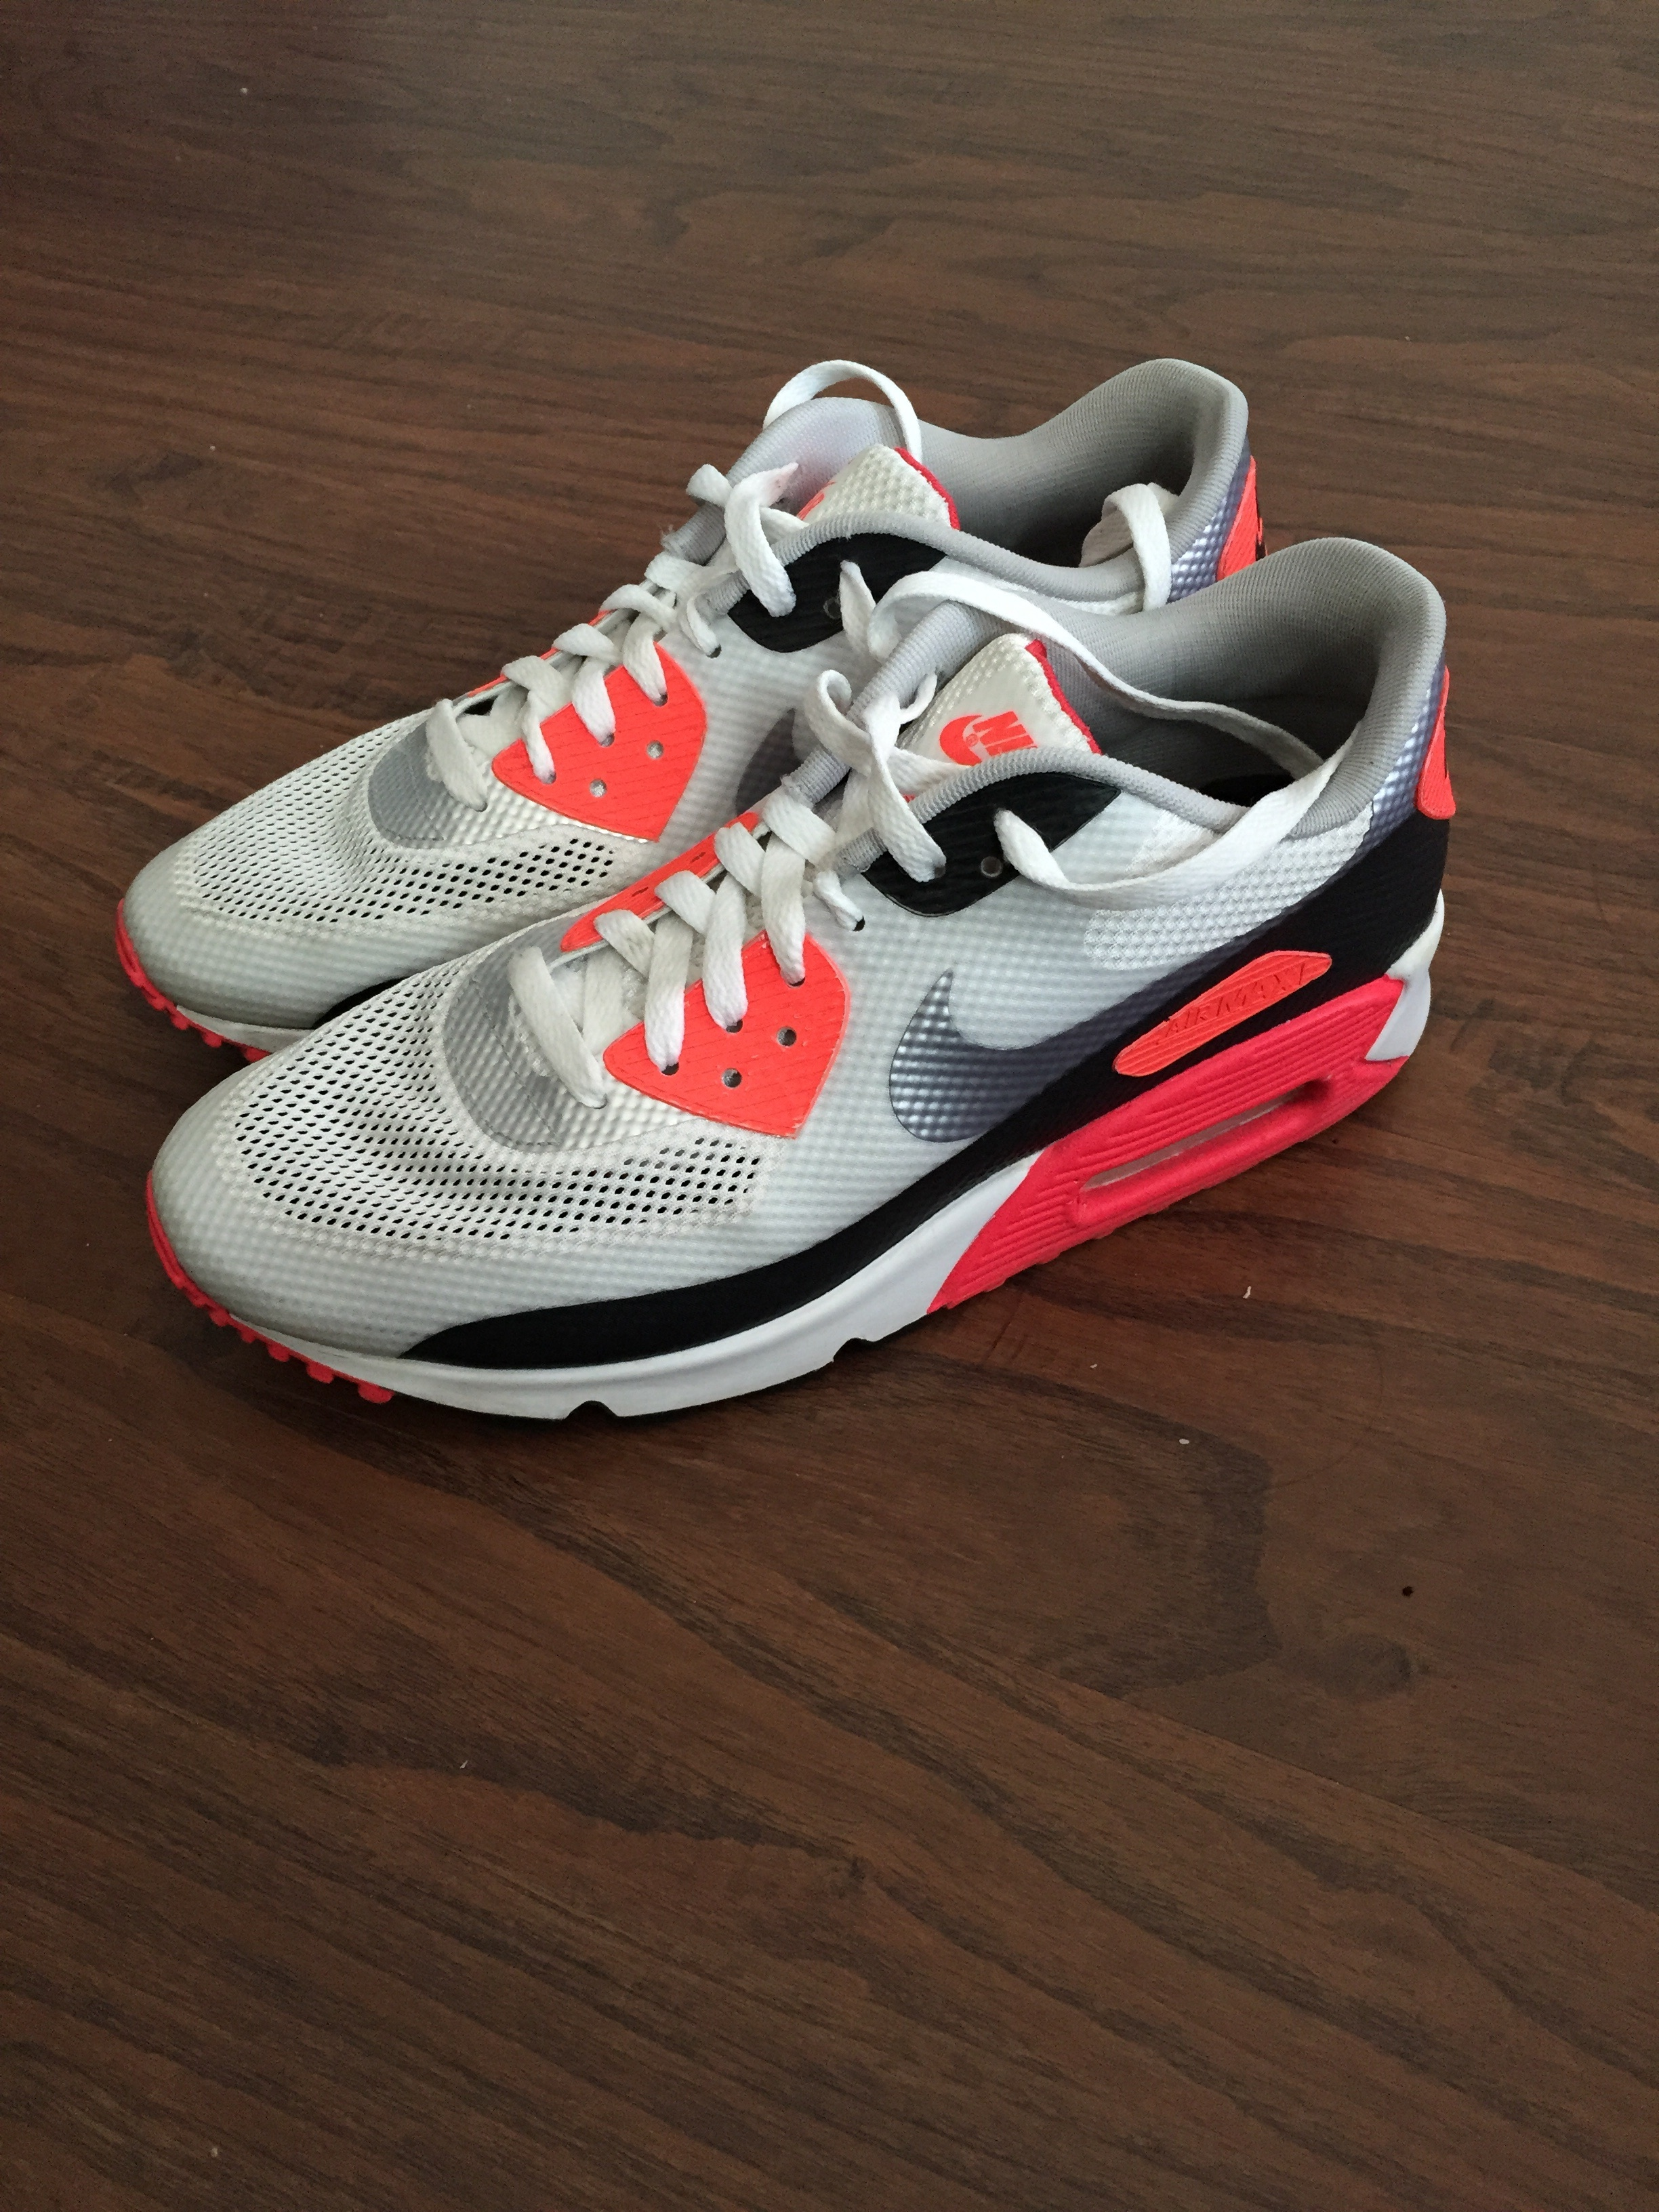 new arrival a207a f5772 Nike ×. Air Max 90 HYP NRG Infrared